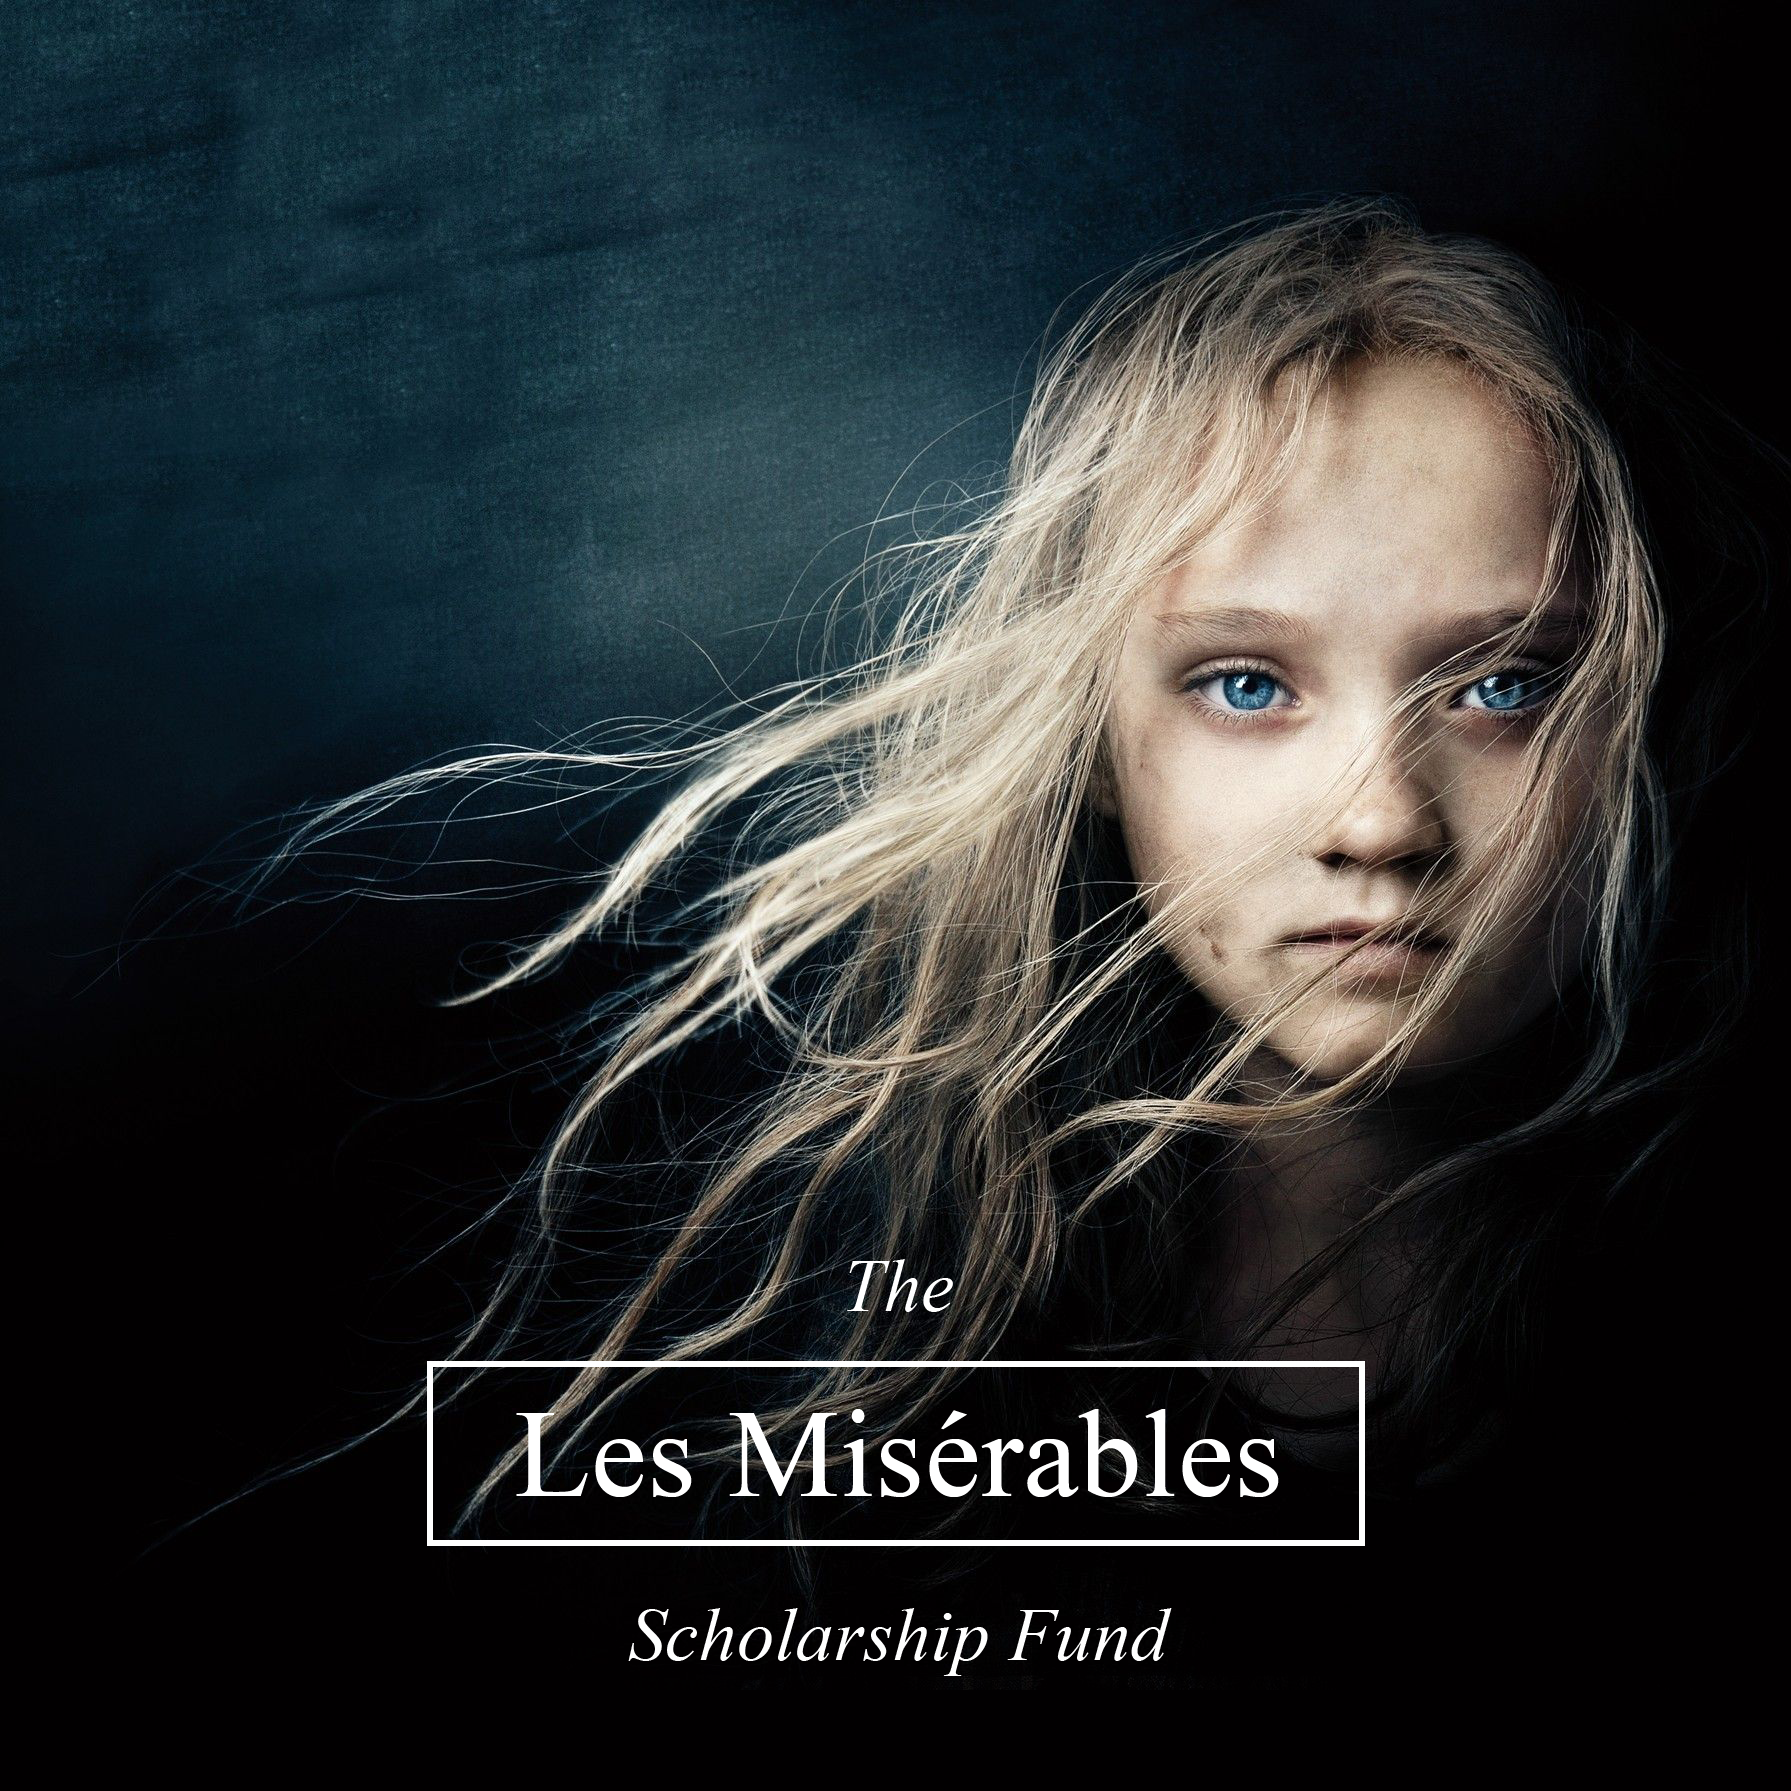 The-Les-Miserables-Scholarship-Fund